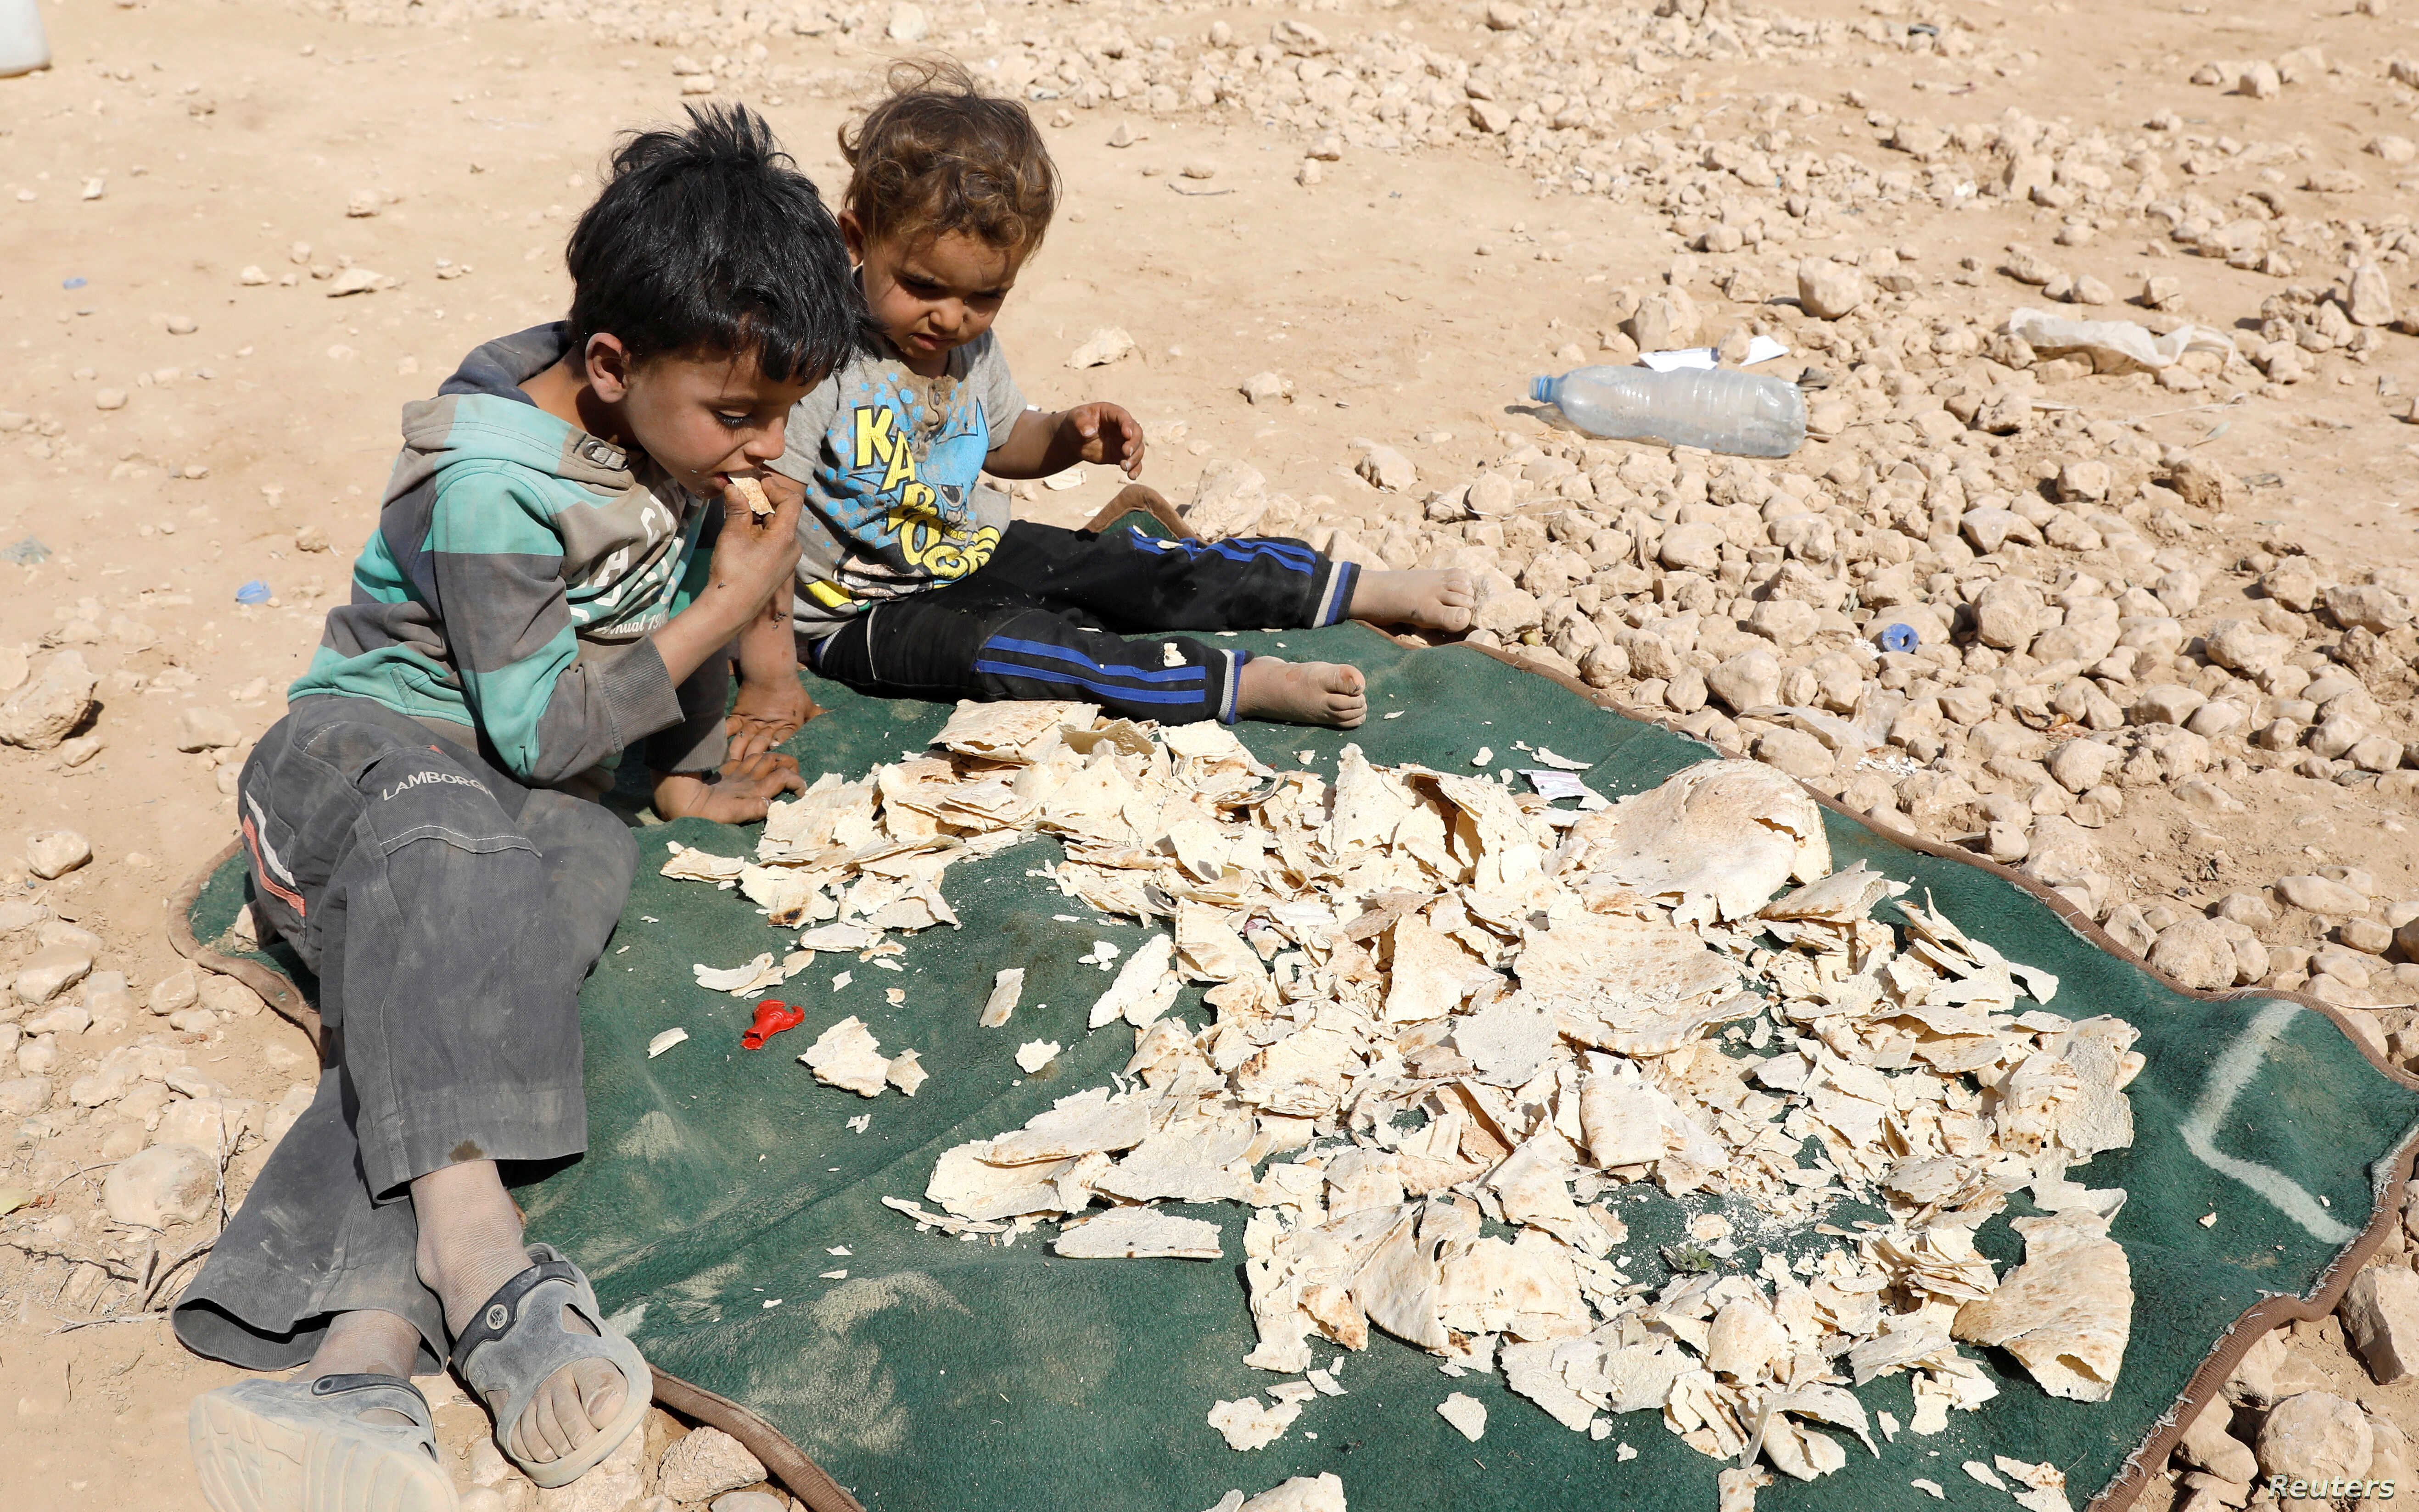 Children play near stale bread being dried under the sun at a refugee camp for people displaced because of fighting between the Syrian Democratic Forces and Islamic State militants, in Ain Issa, Syria, Oct. 14, 2017.